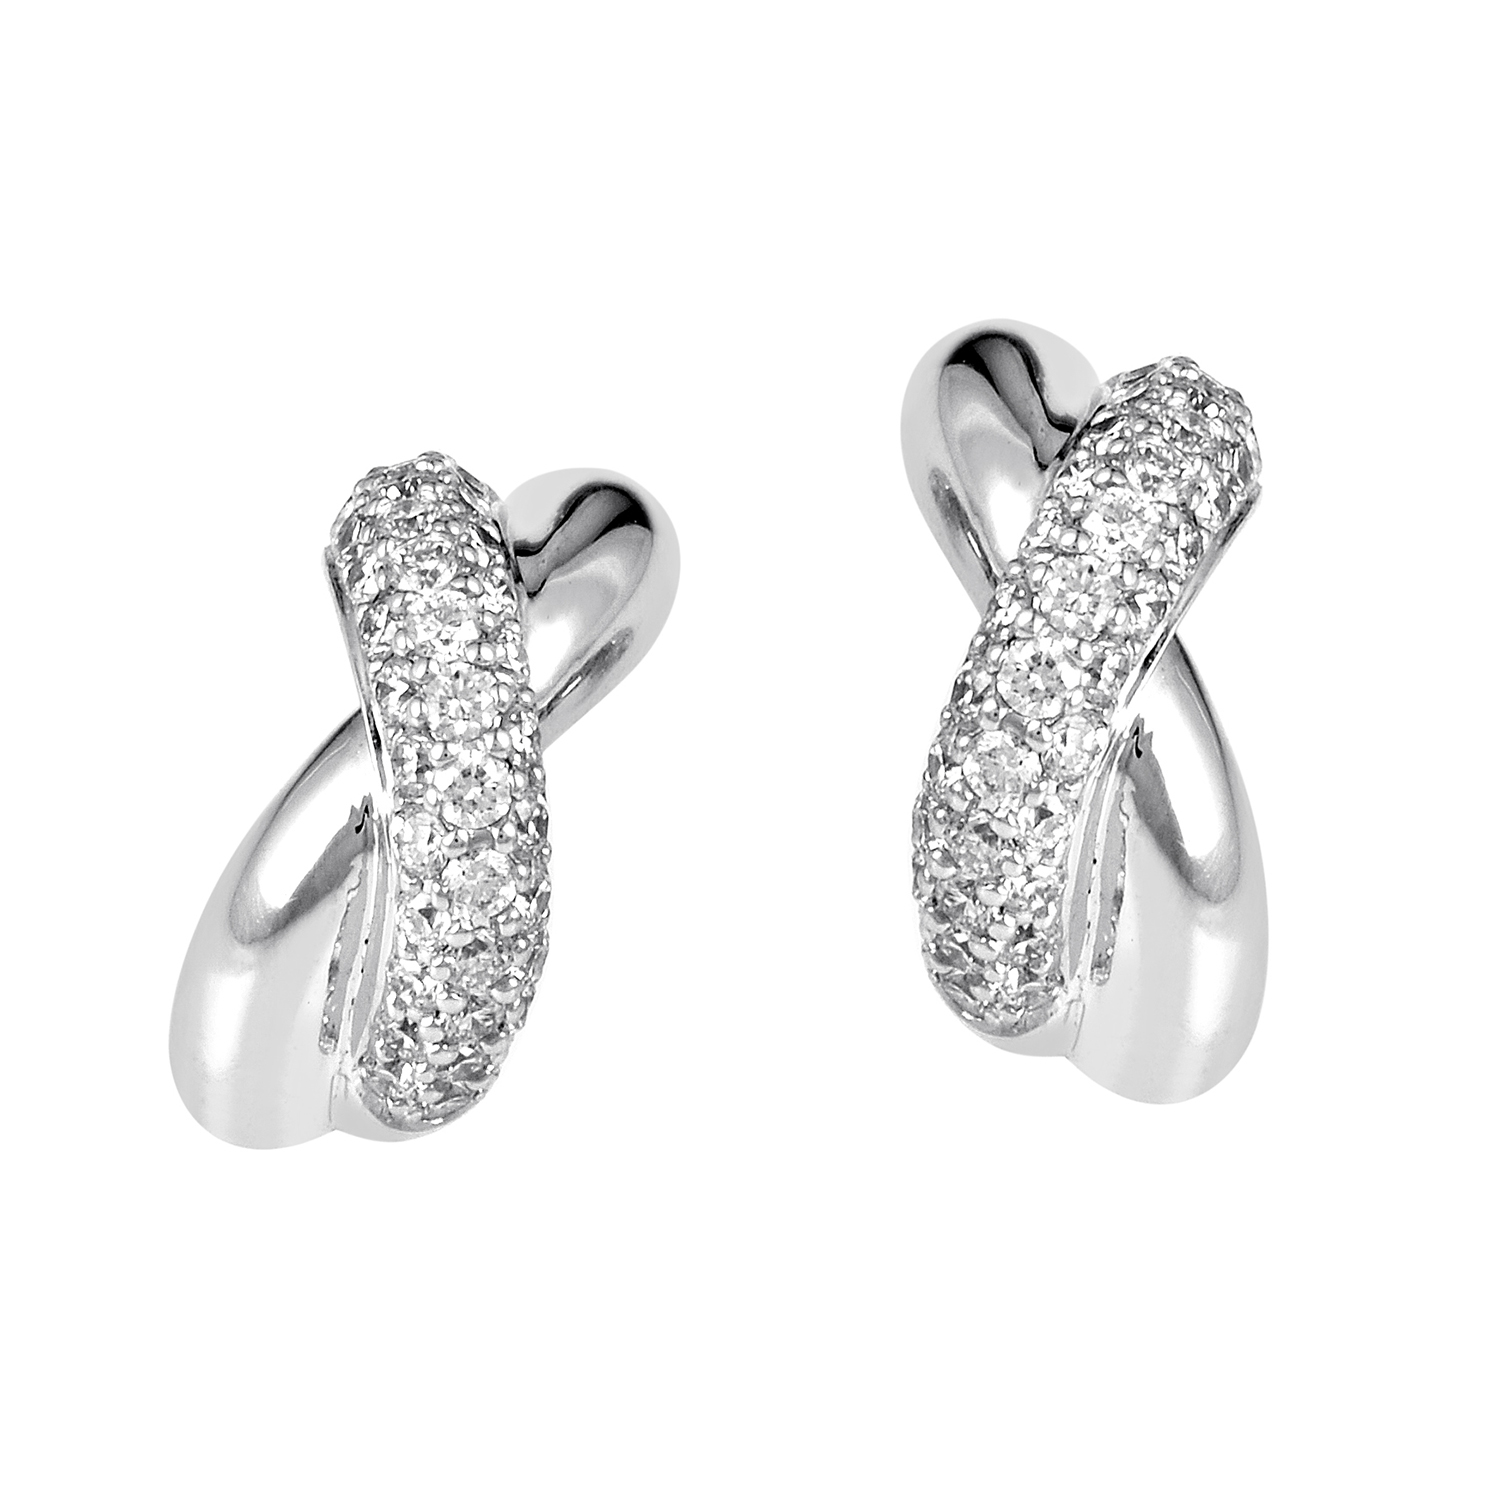 Criss-Cross 18K White Gold Diamond Earrings PPH1110